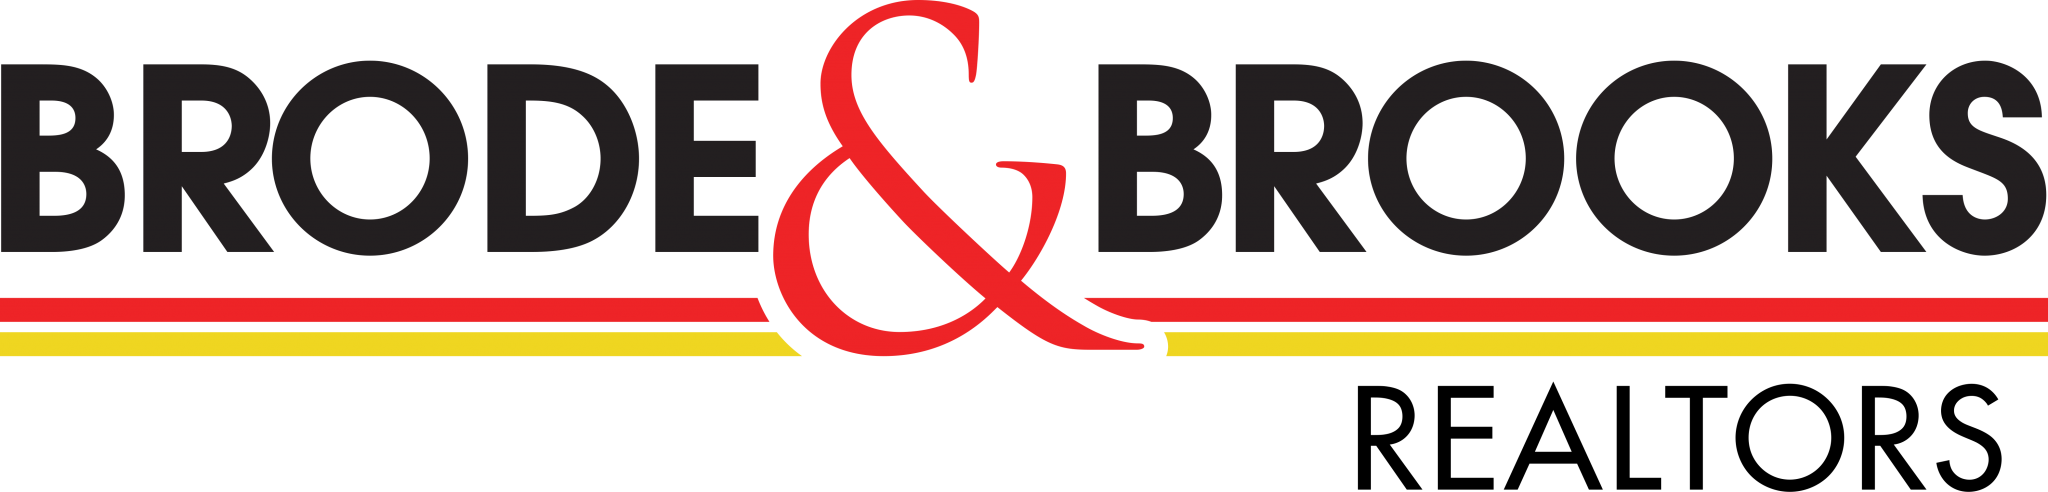 Brode and Brooks, Inc. Real Estate Agents and Brokers in Pennsburg PA Logo